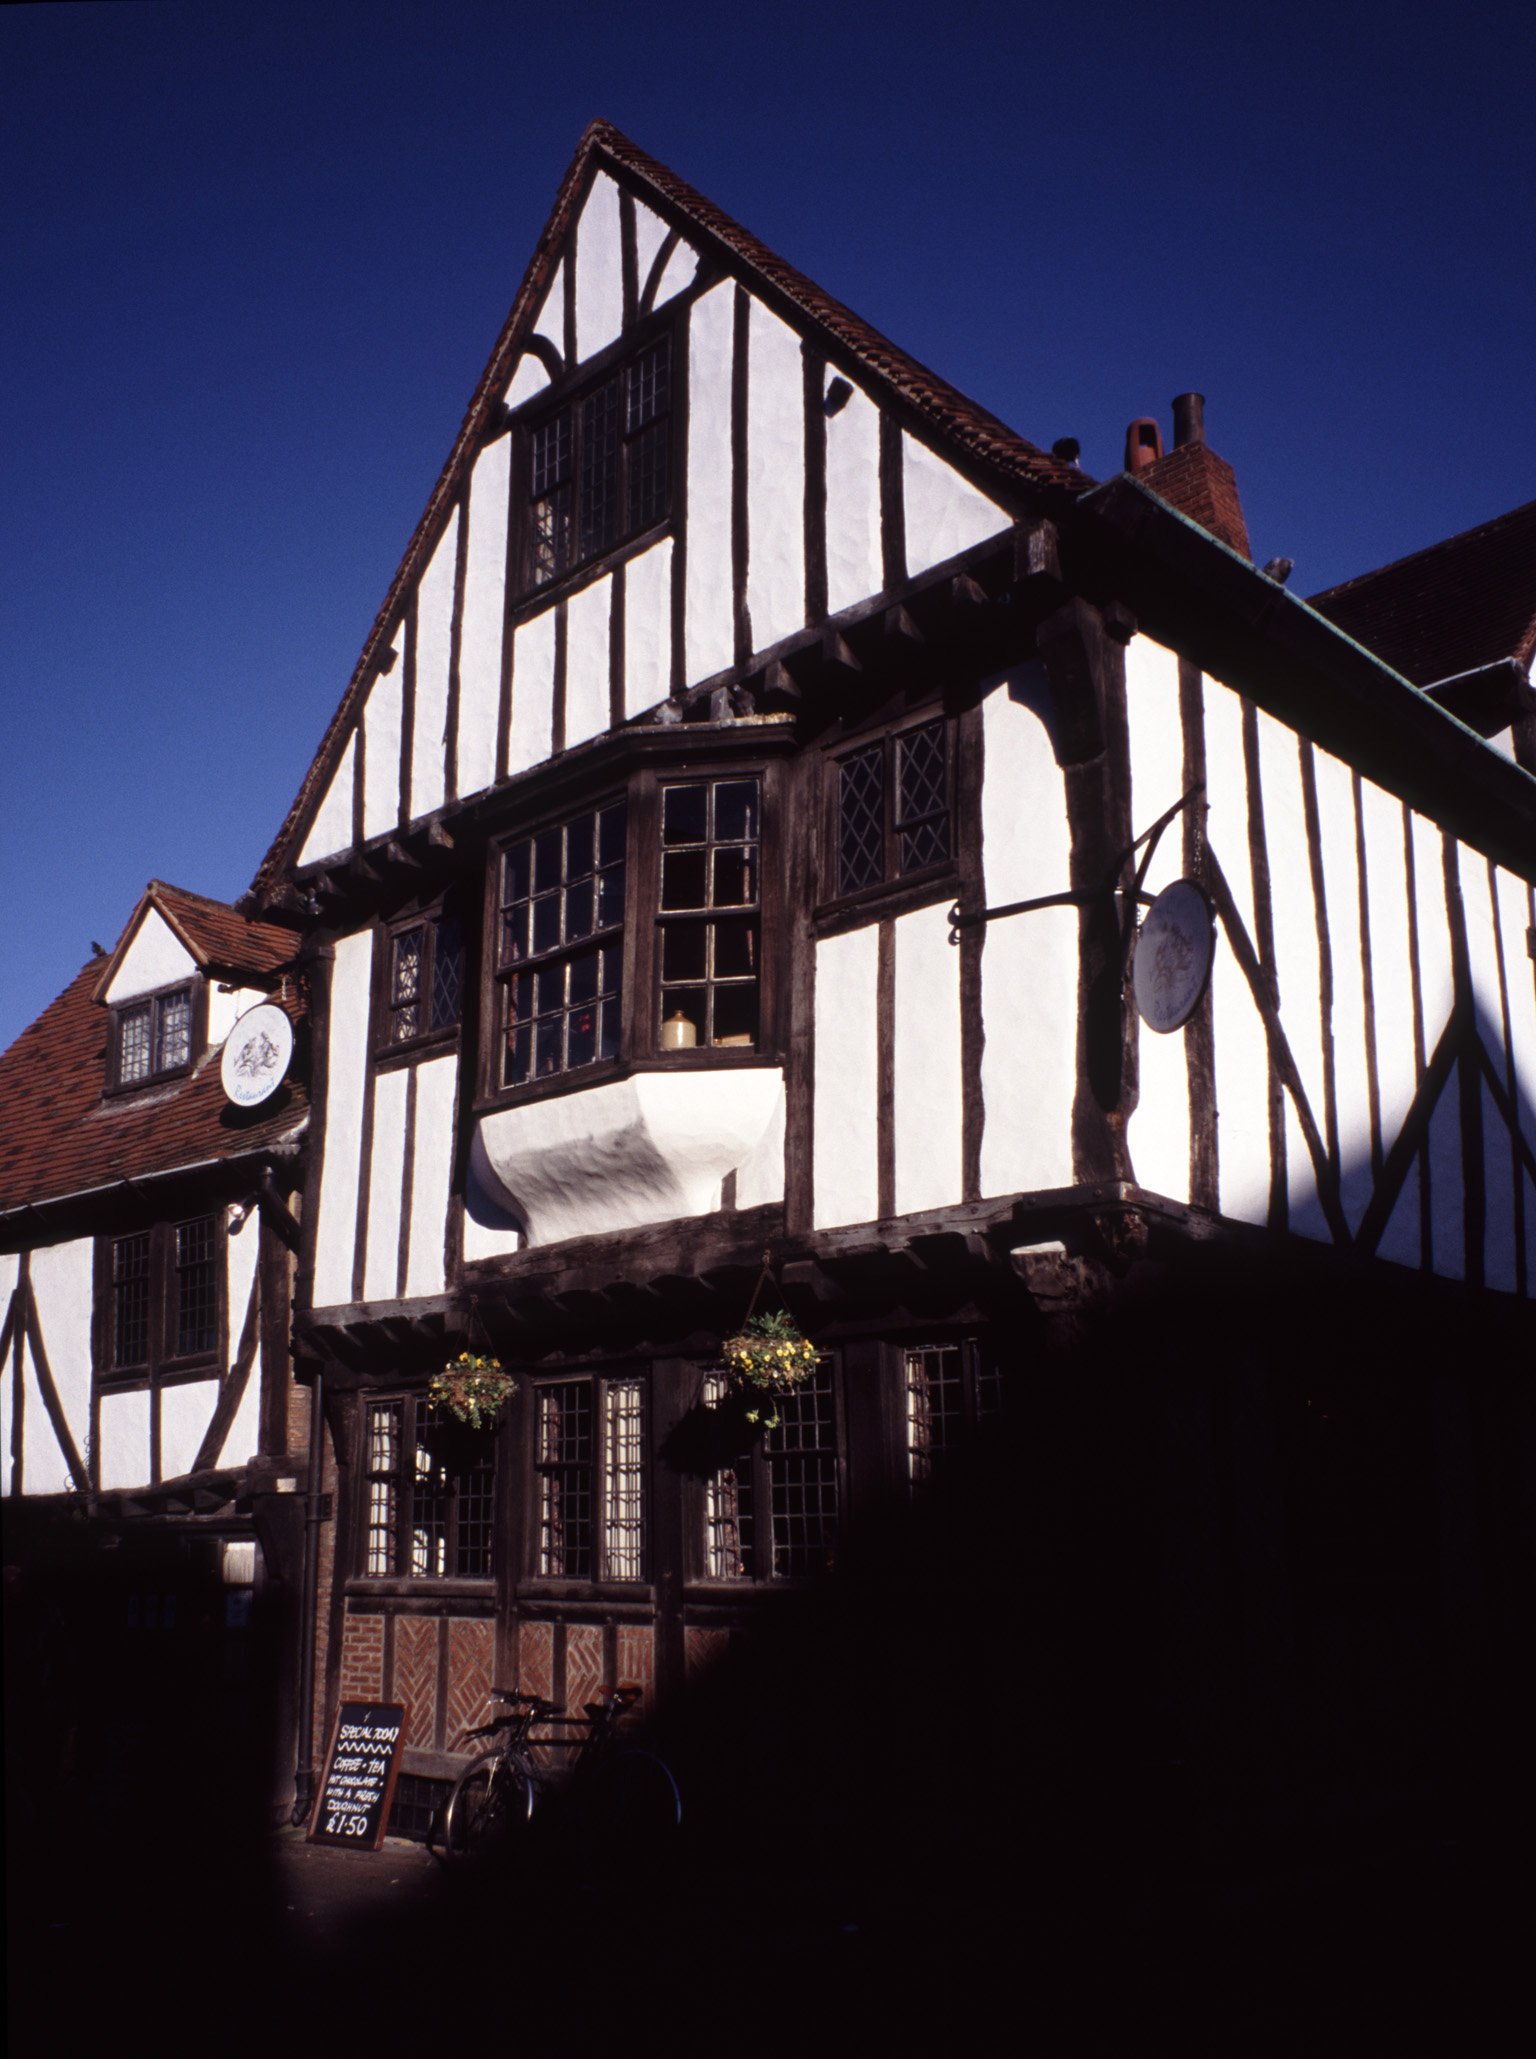 Traditional timber framed Tudor house with an overhanging bay window in York, UK